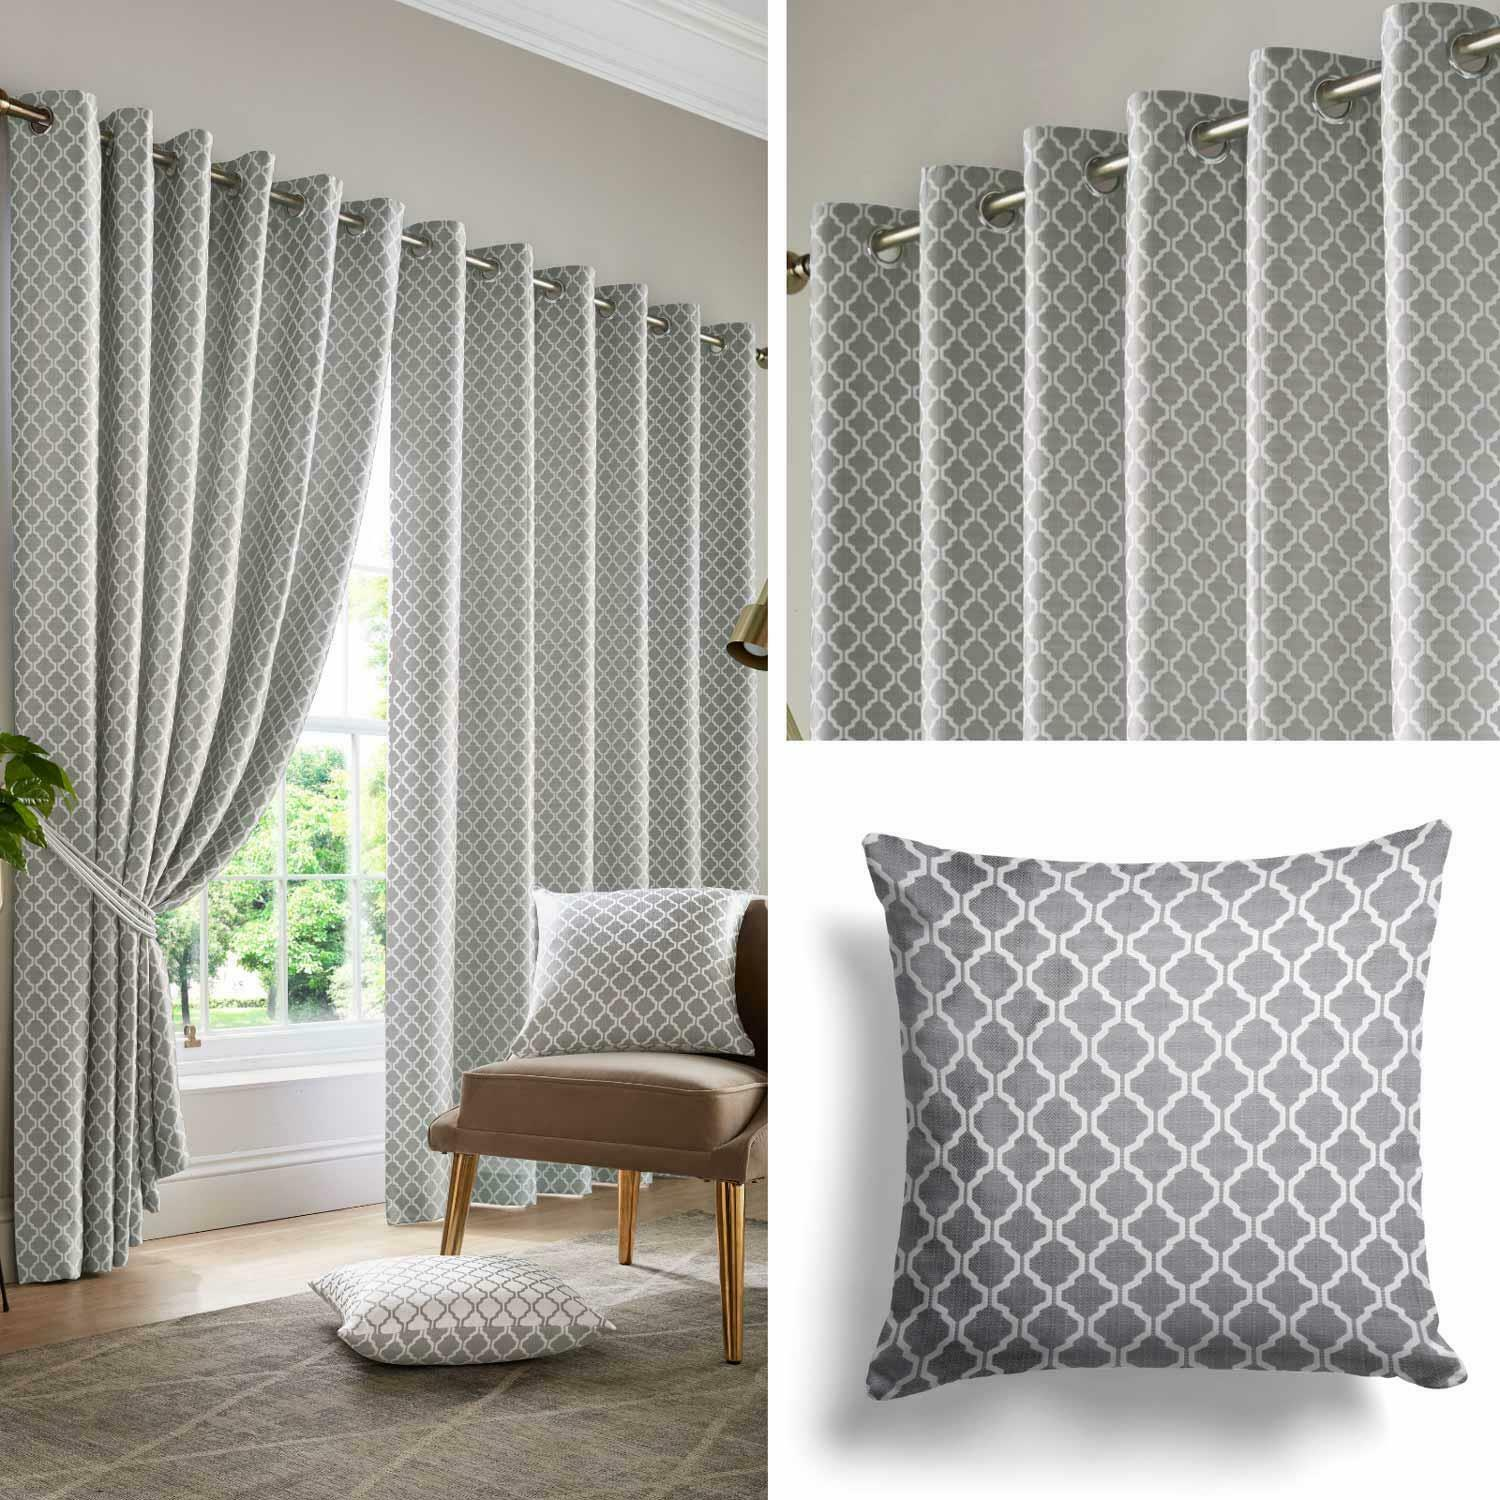 Grey Cotswold Lined Eyelet Curtains Luxury Ready Made Jacquard Ring Top Pairs 1 Of 6free Shipping See More